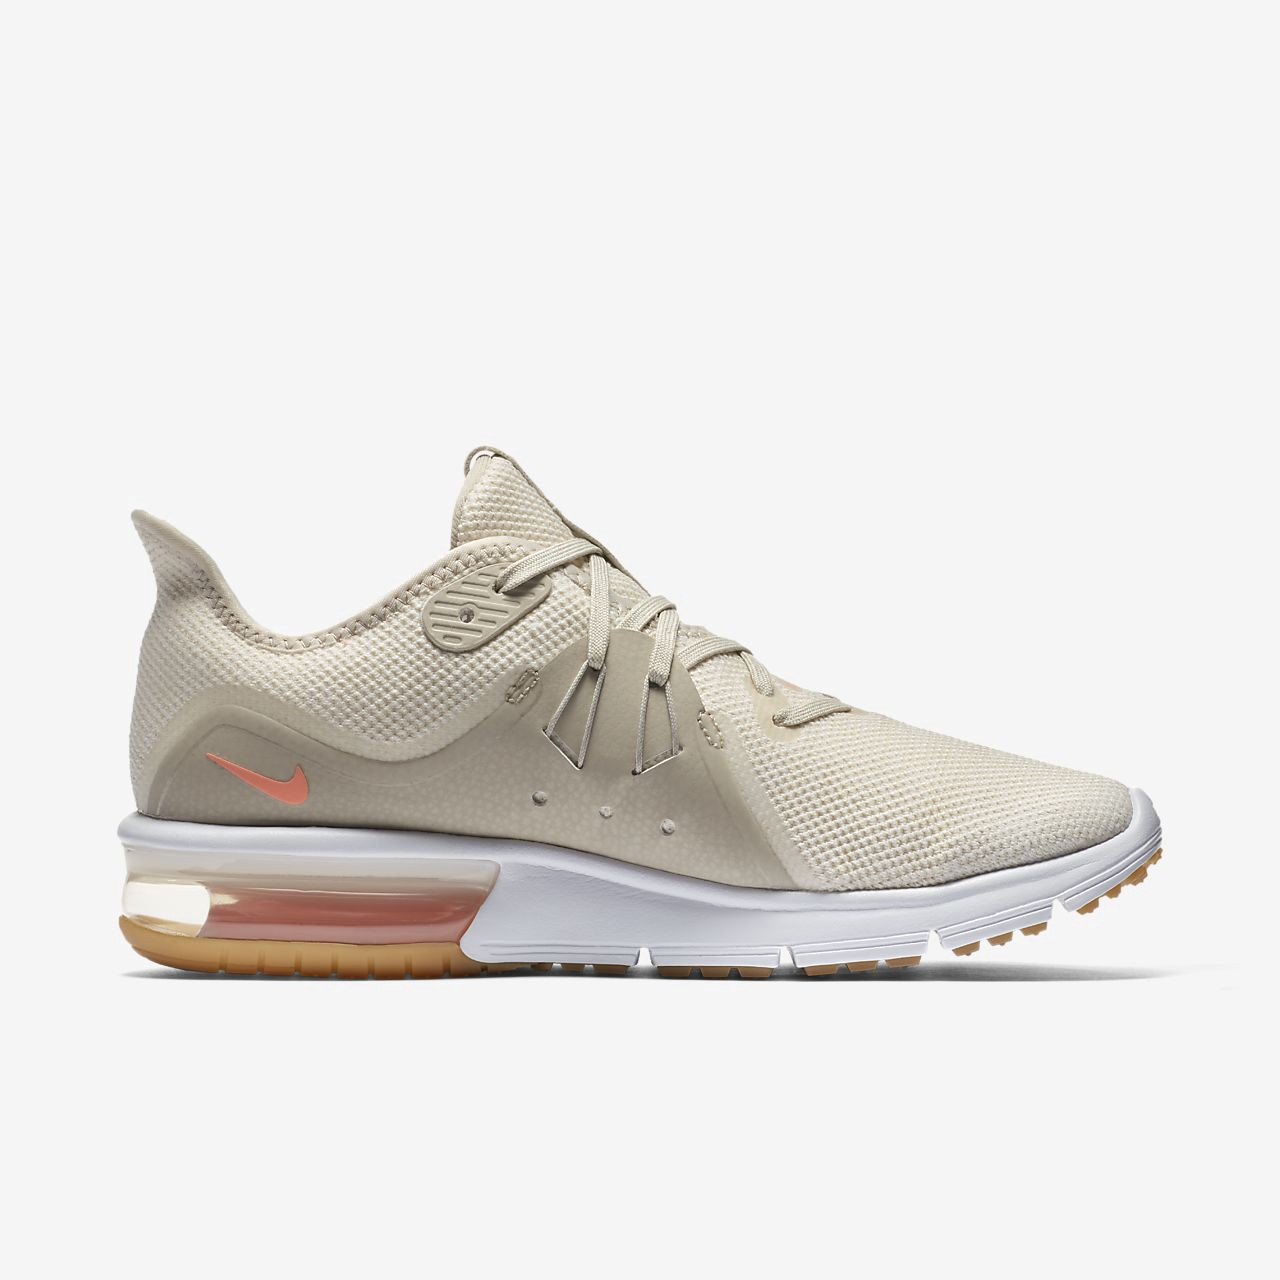 new concept 5768a 01657 Nike Air Max Sequent 3 Summer Men s Running Shoe - 6.5